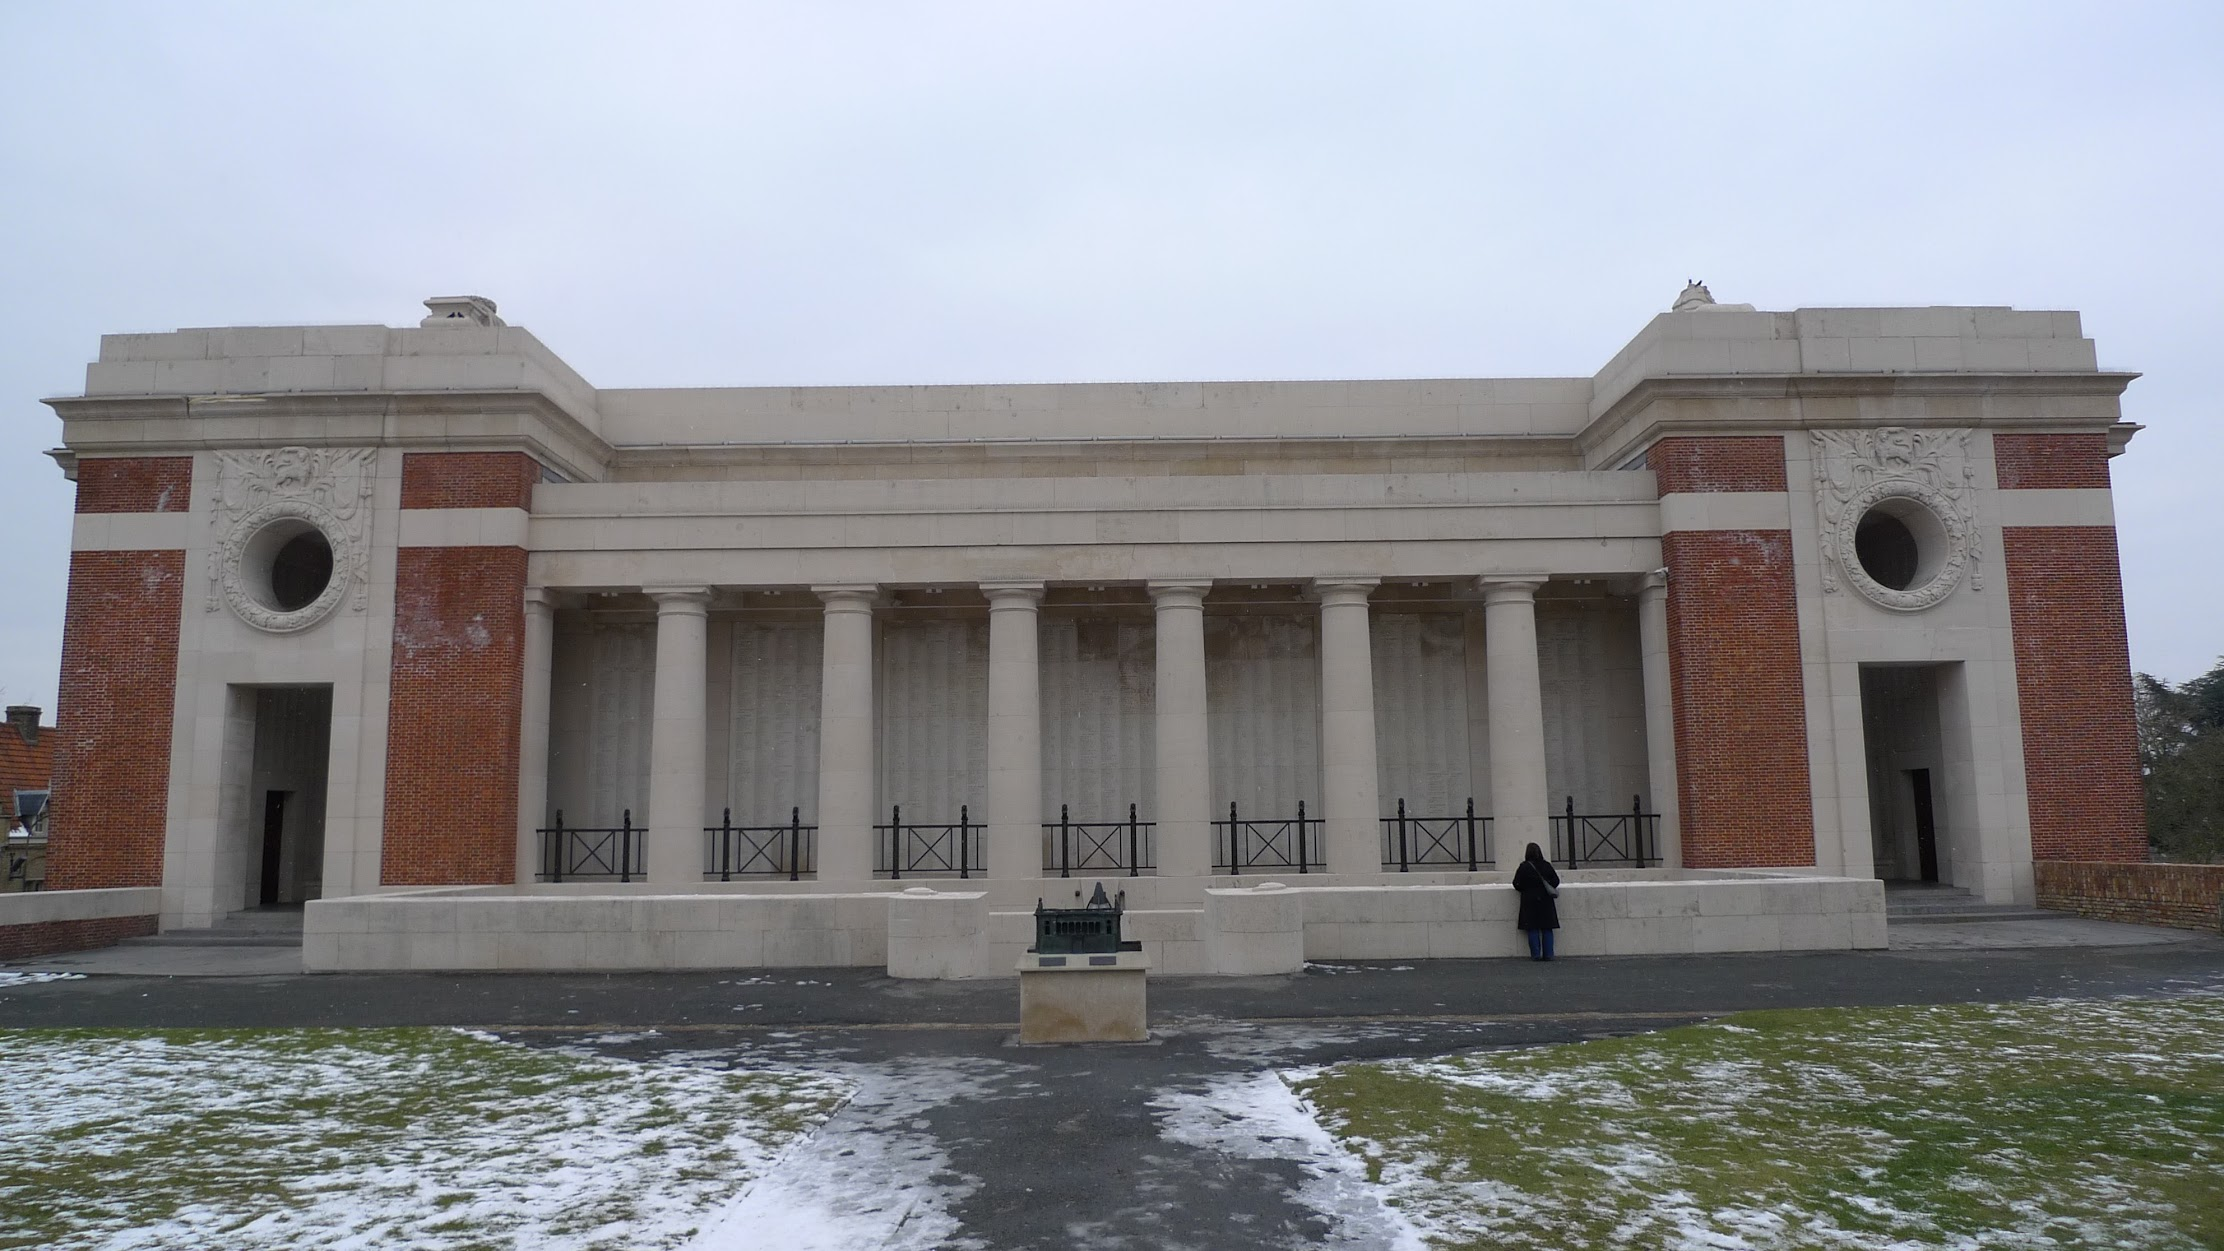 The Menin Gate in Ypres 2010